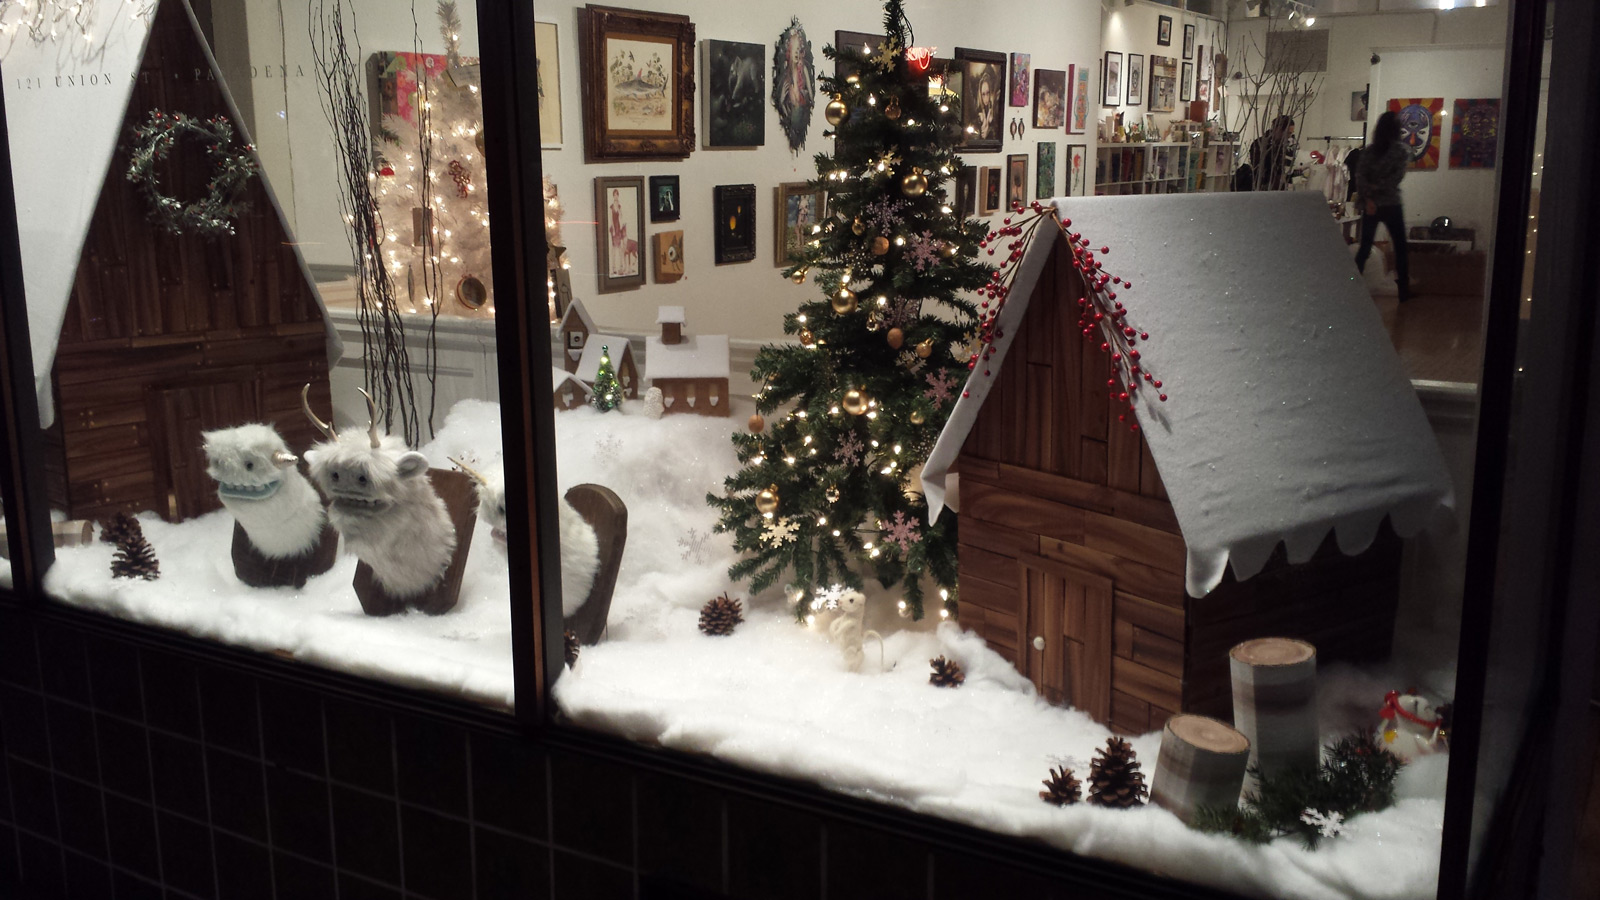 Very cozy place with a lodge, a decorated fir, much snow, all this for a winter window display.